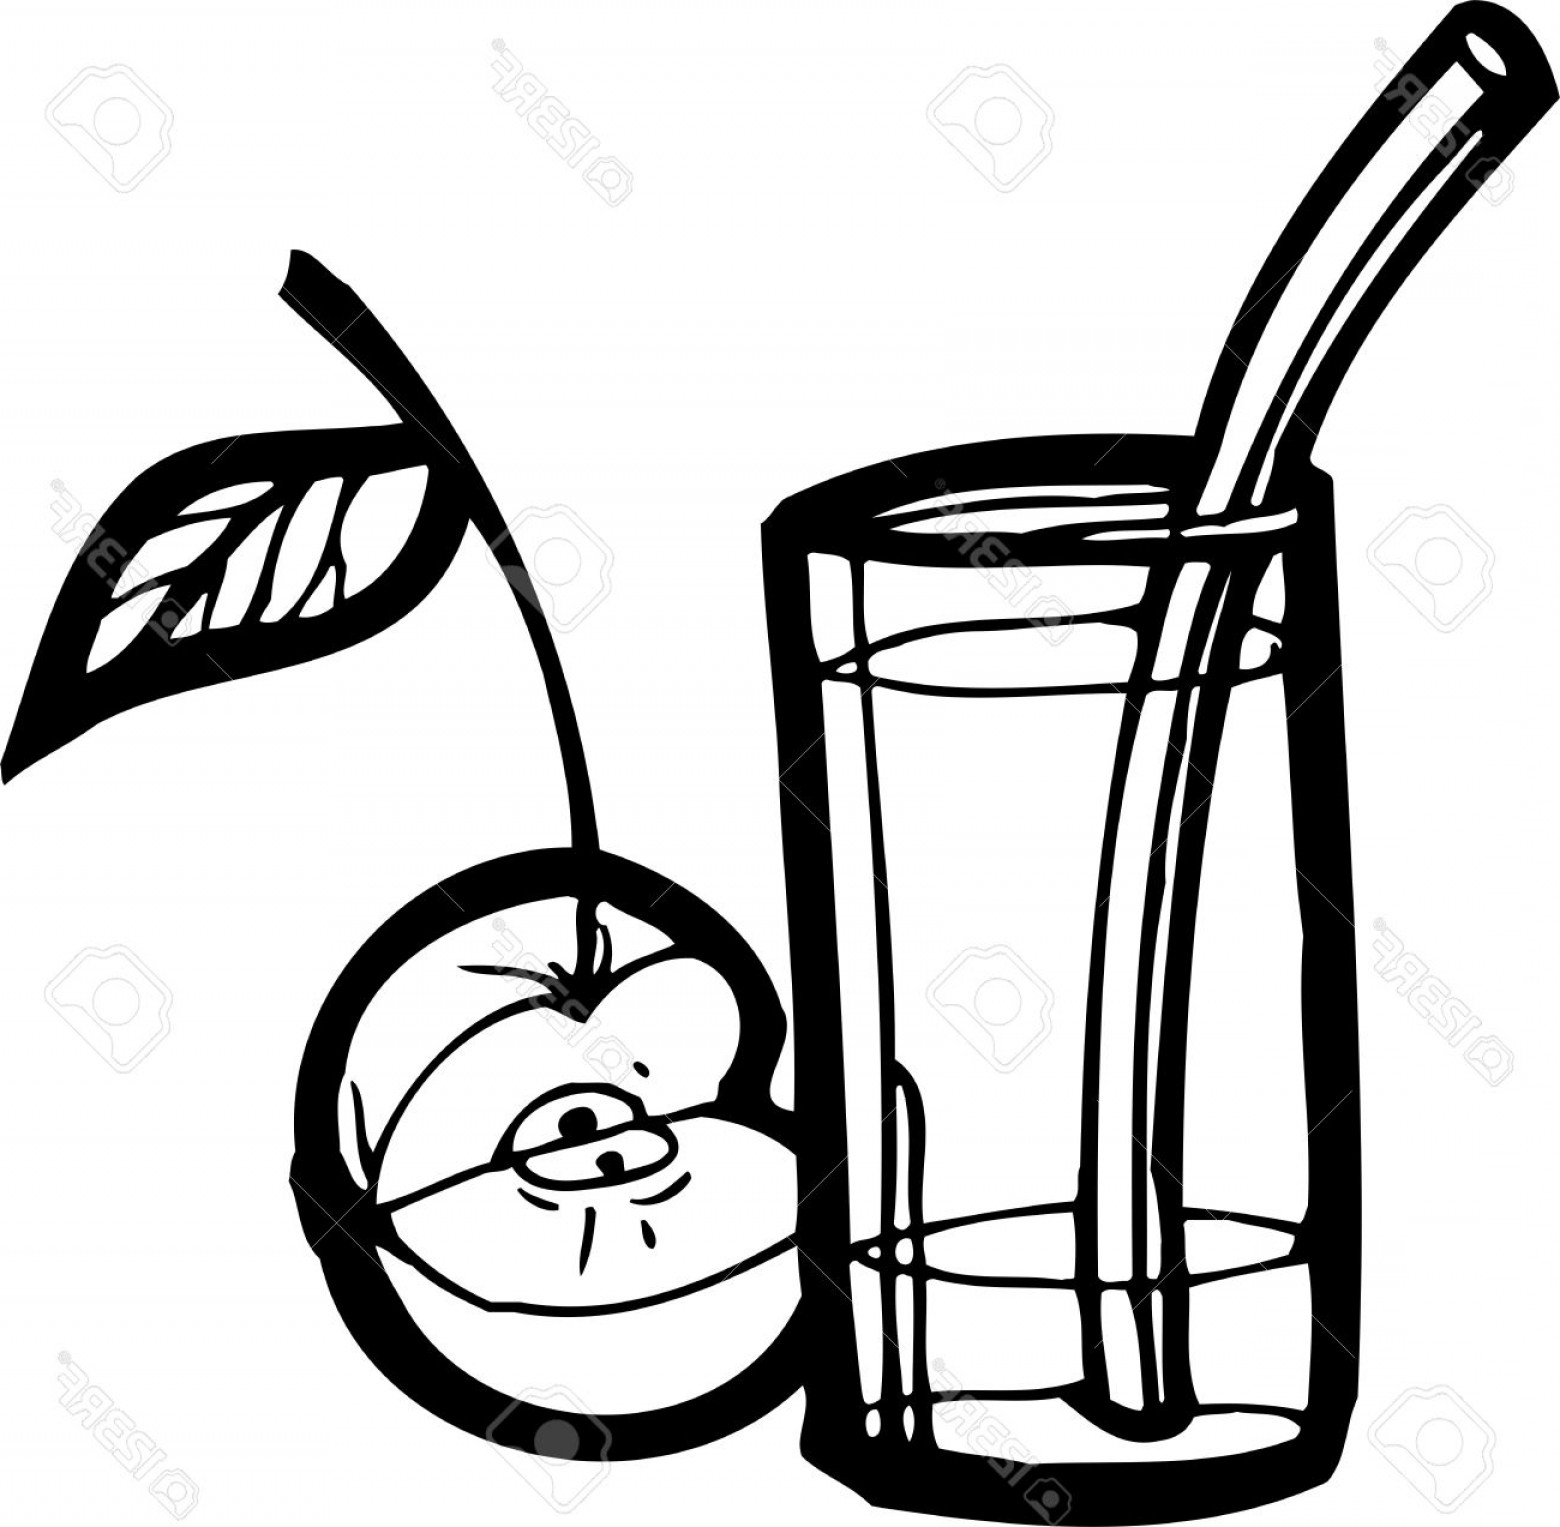 Juice Vector Black: Photoapple And Juice Fastfood Vector Illustration Ready For Vinyl Cutting